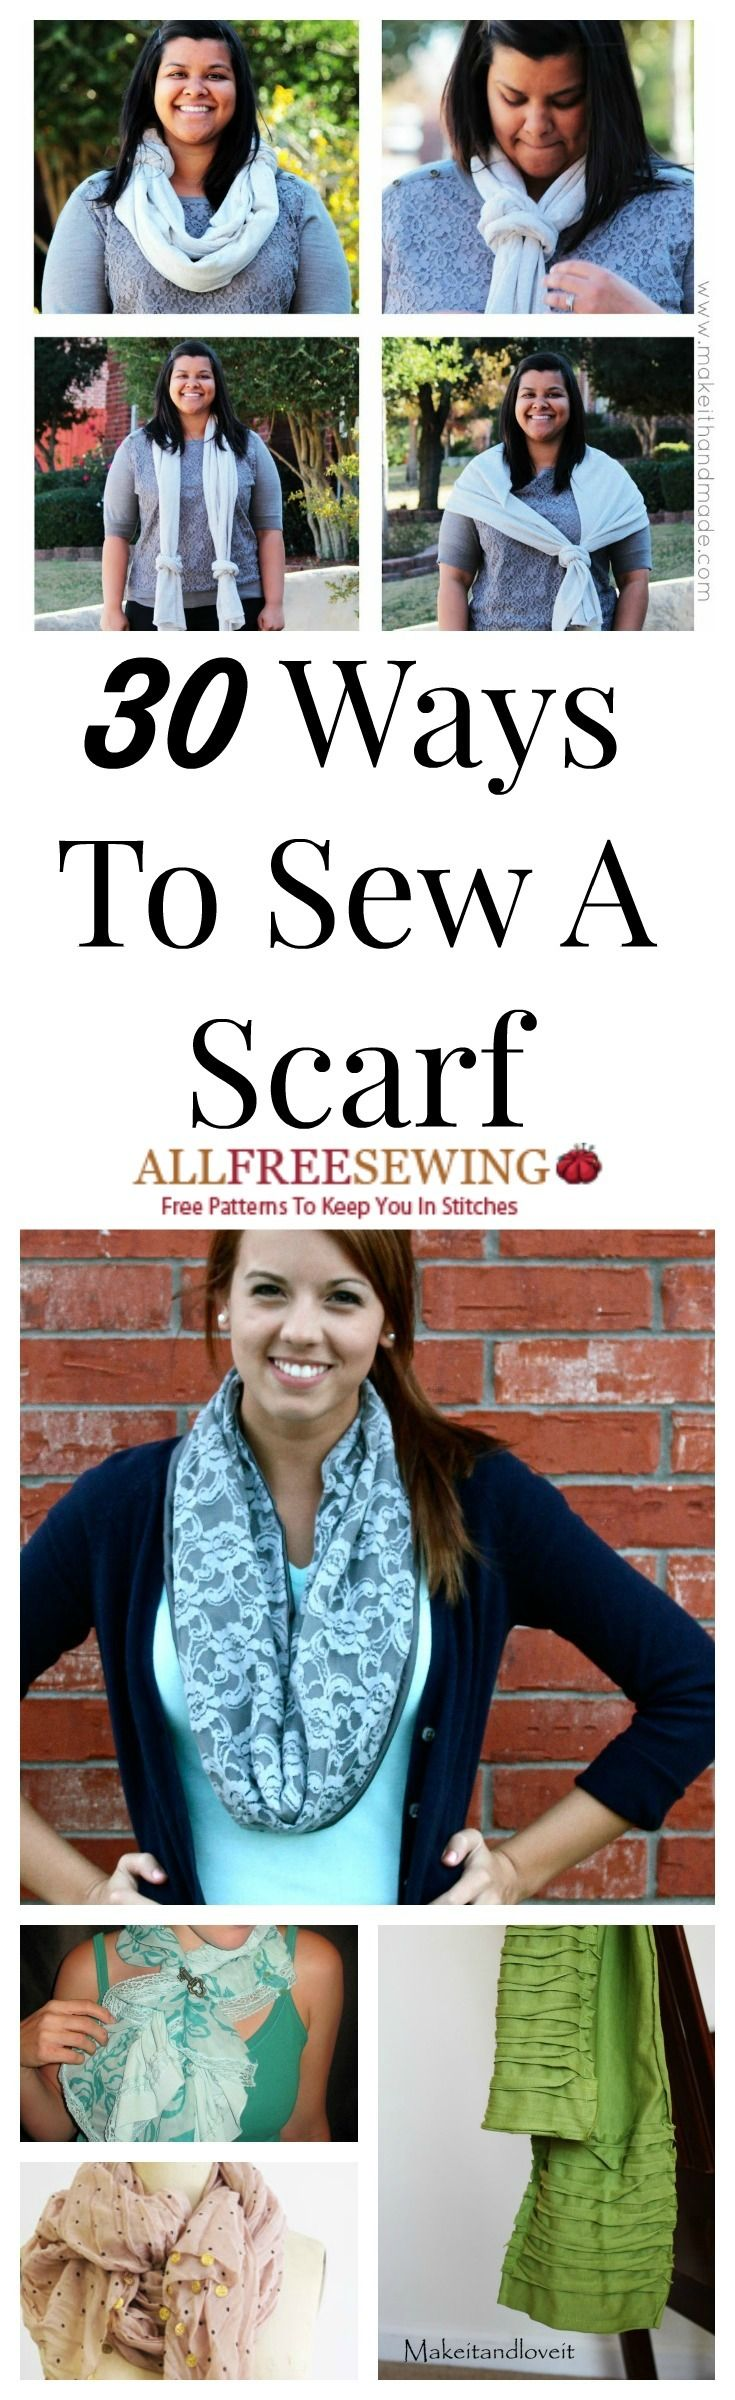 30 Ways to Learn How to Sew a Scarf + Infinity Scarf Patterns | AllFreeSewing.com